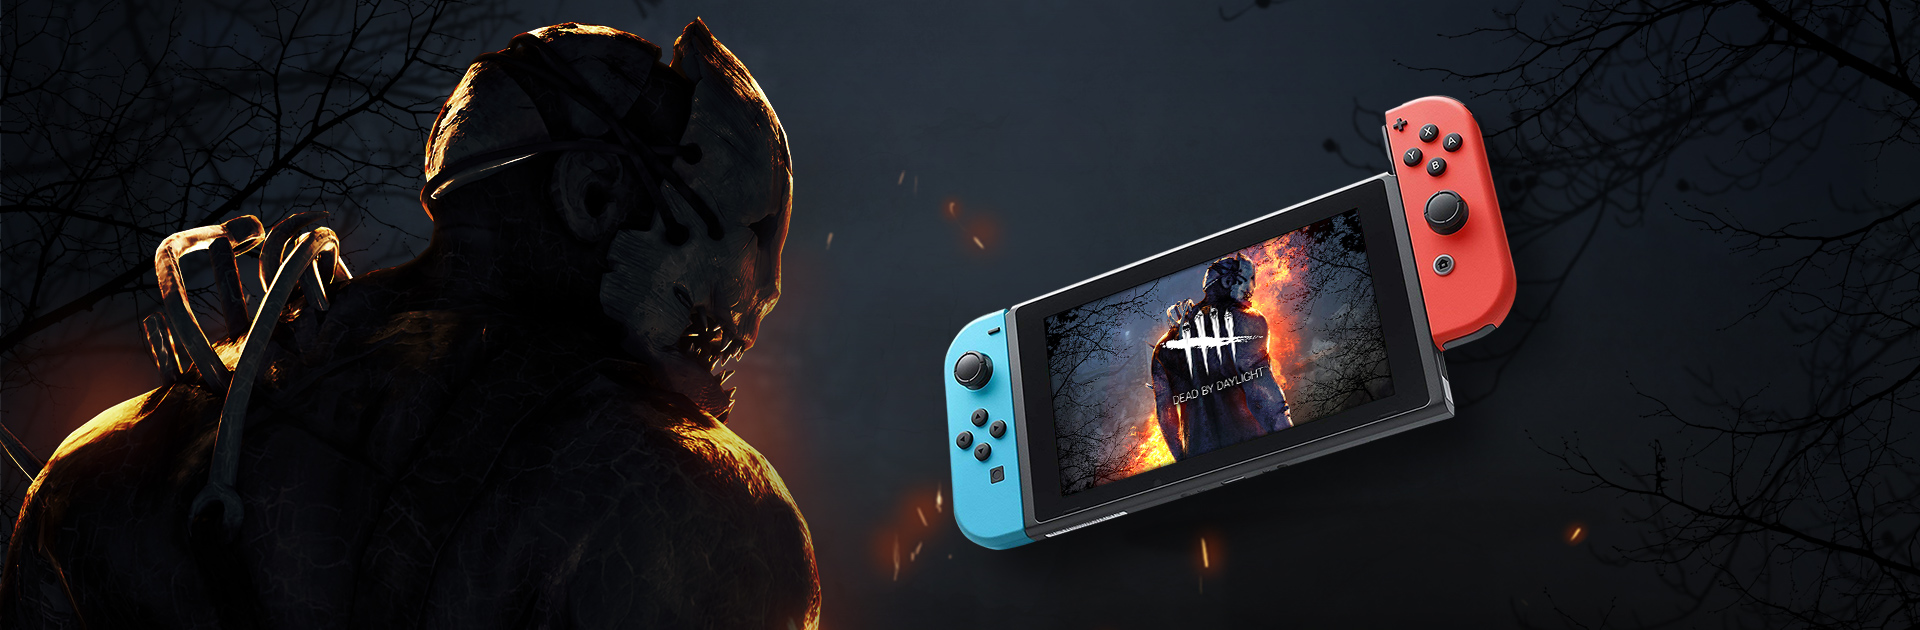 Dead by Daylight for Nintendo Switch Now Available